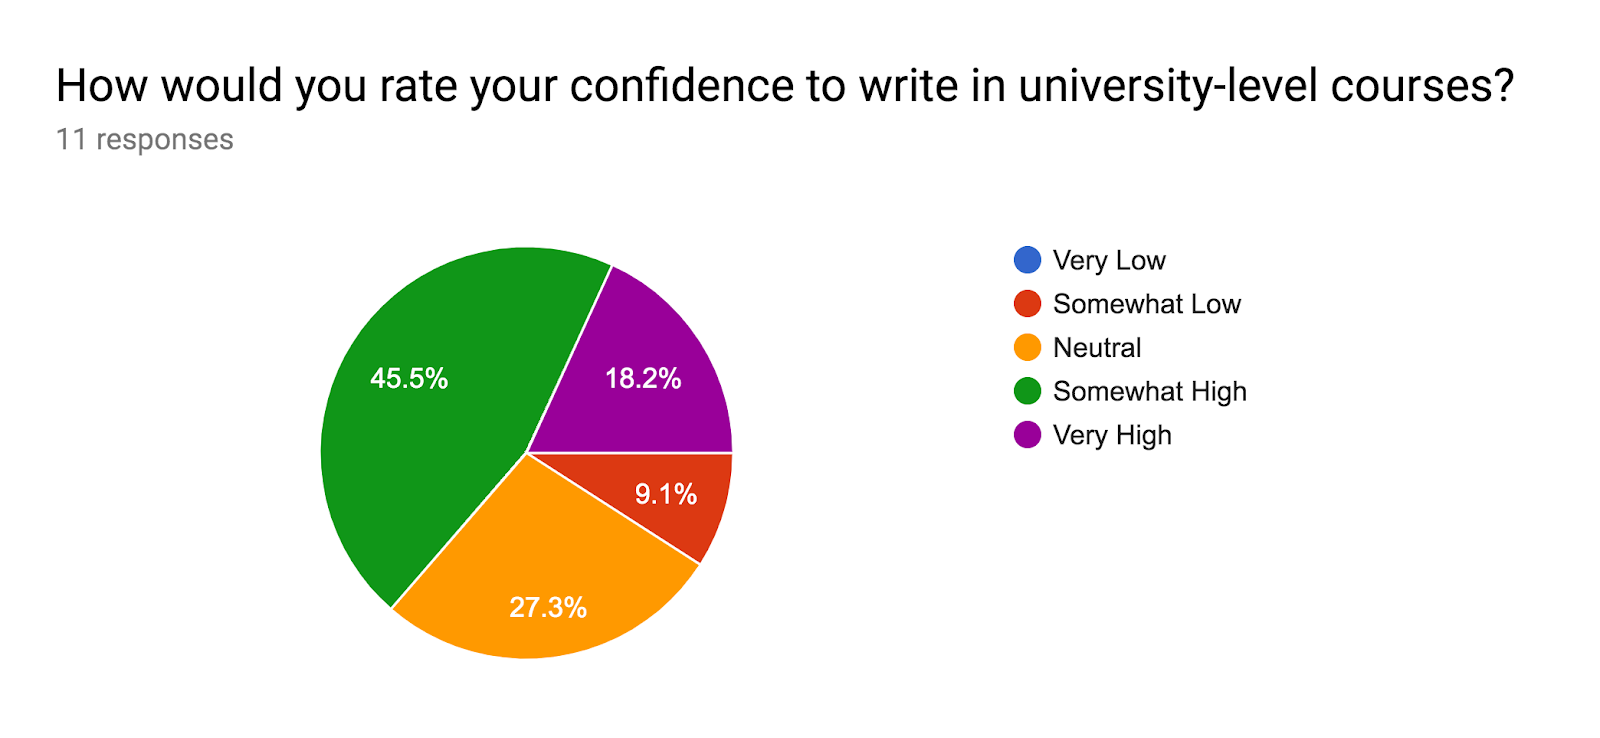 Forms response chart. Question title: How would you rate your confidence to write in university-level courses?. Number of responses: 11 responses.